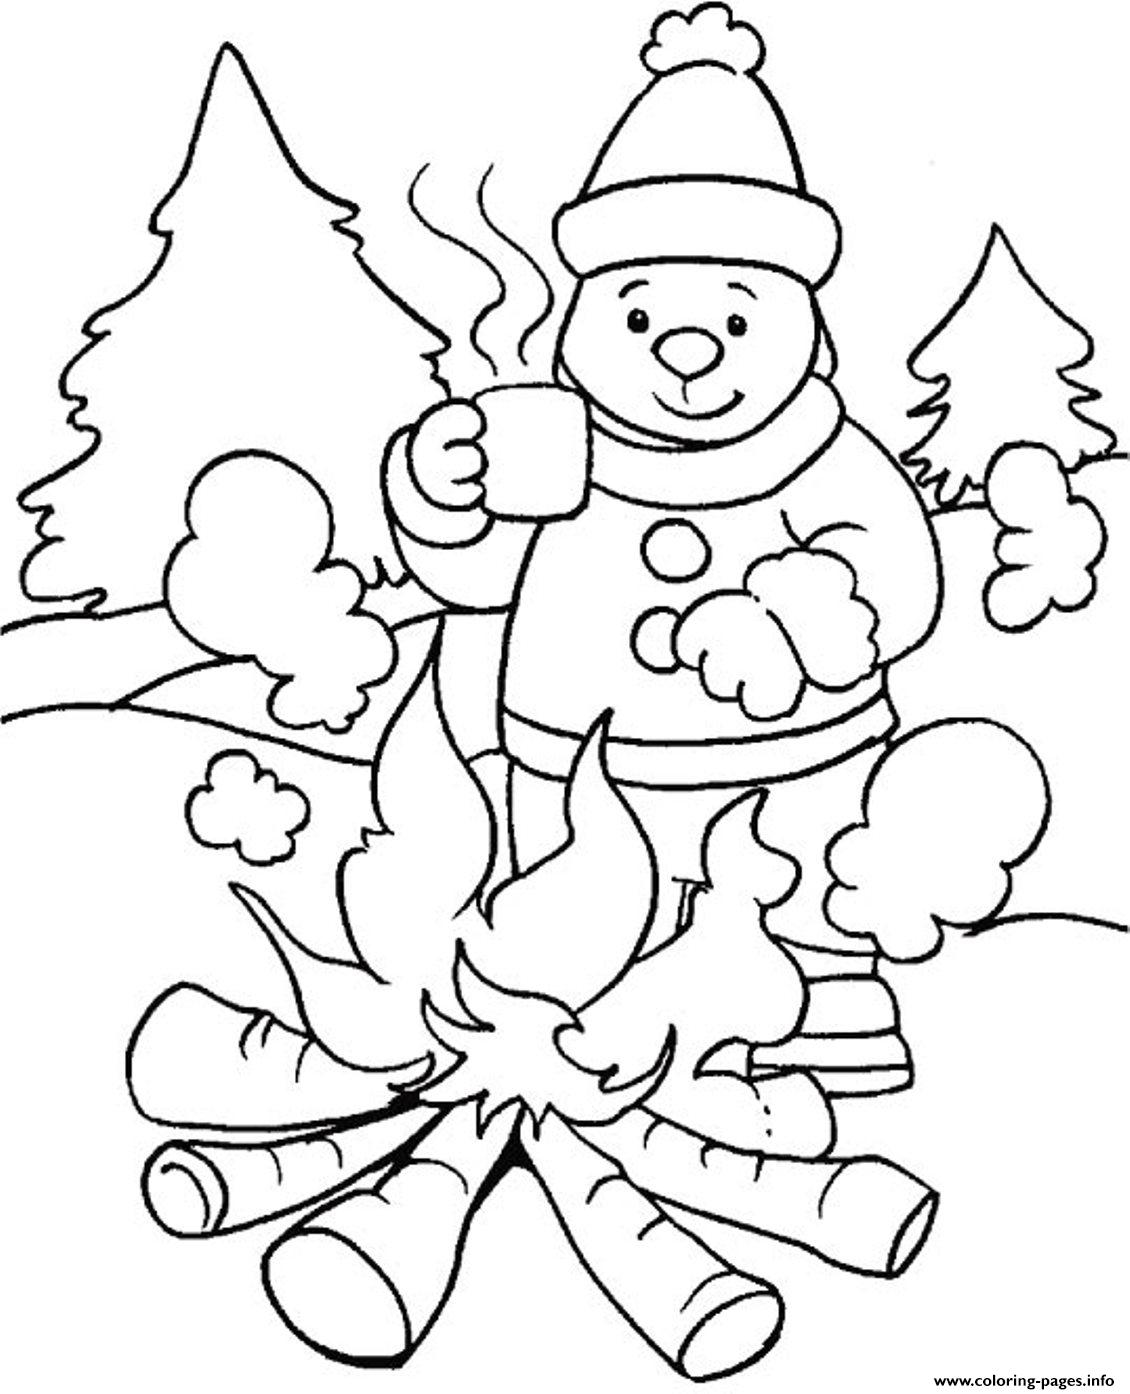 warming with fire in winter sfbbd coloring pages printable